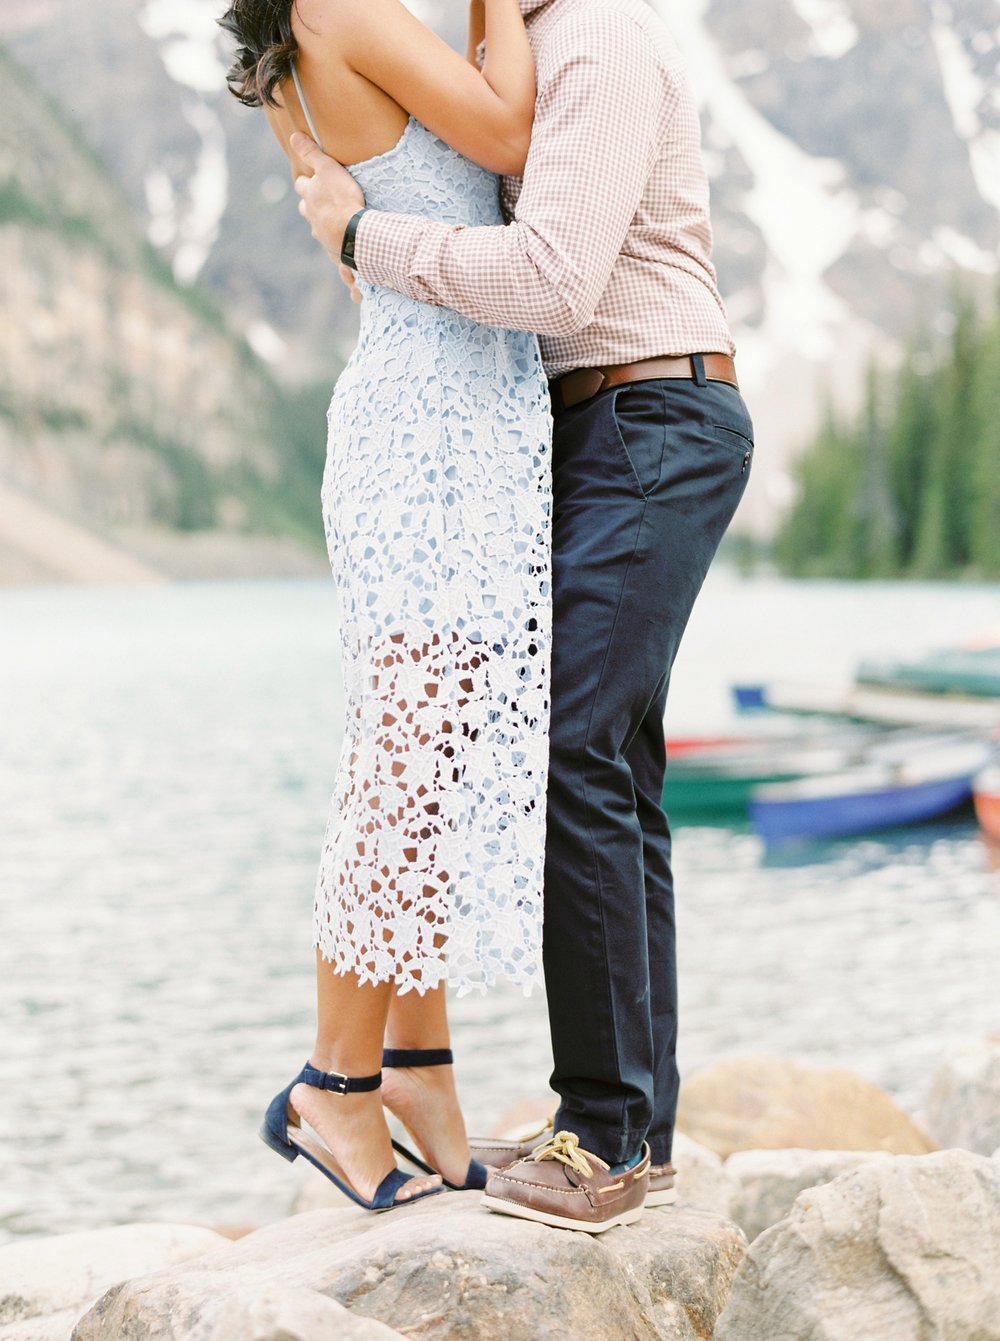 Moraine Lake Engagement Session | Banff wedding photographers | justine milton fine art photography